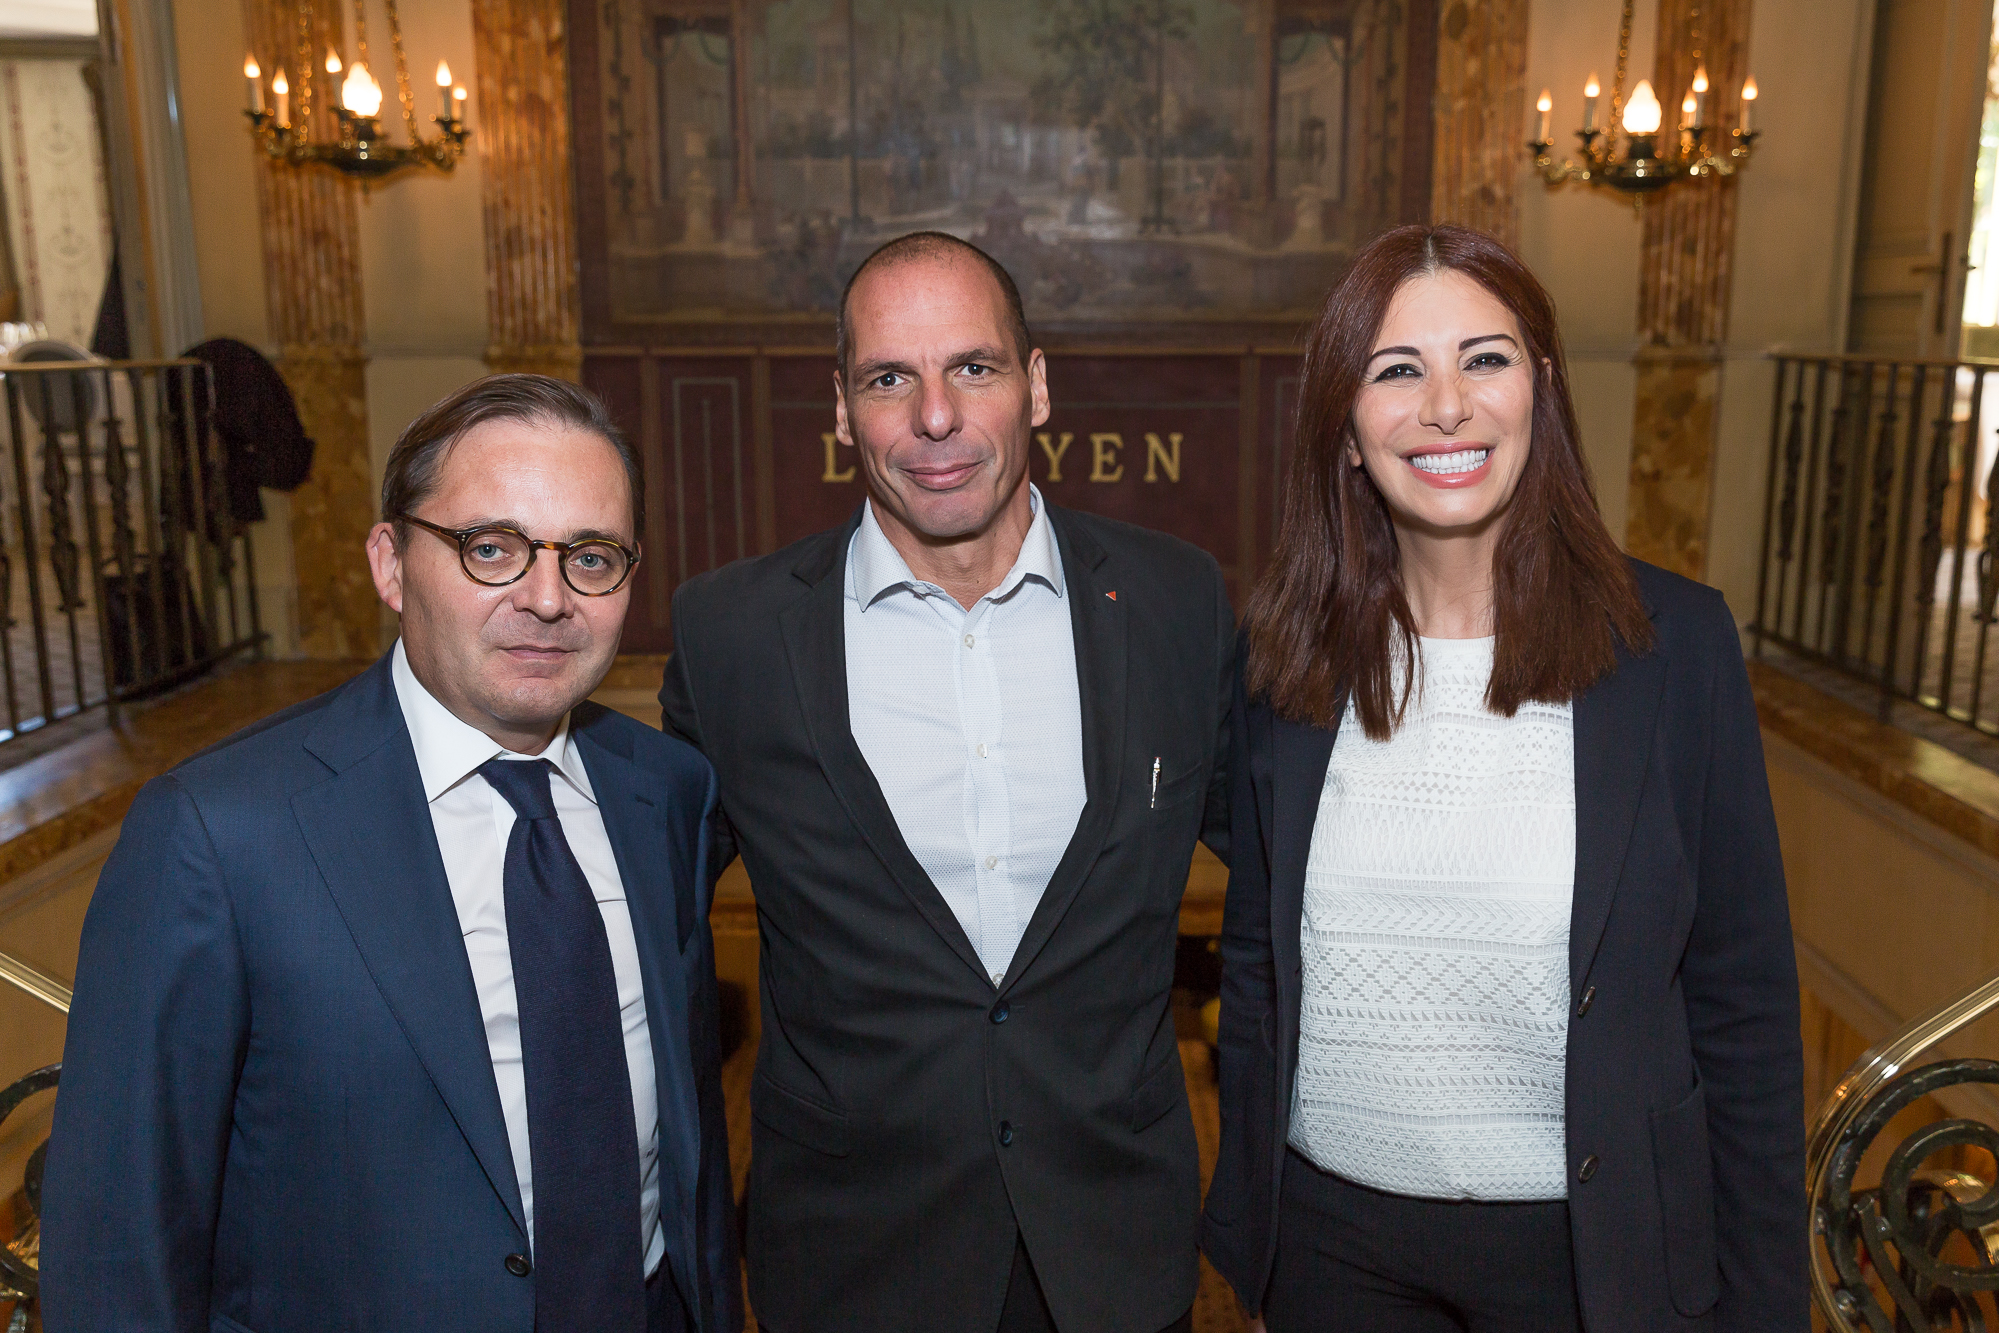 5-Randa-Kassis-with-Yanis-Varoufakis-former-Greek-Finance-Minister-and-Fabien-Baussart-President-of-CPFA